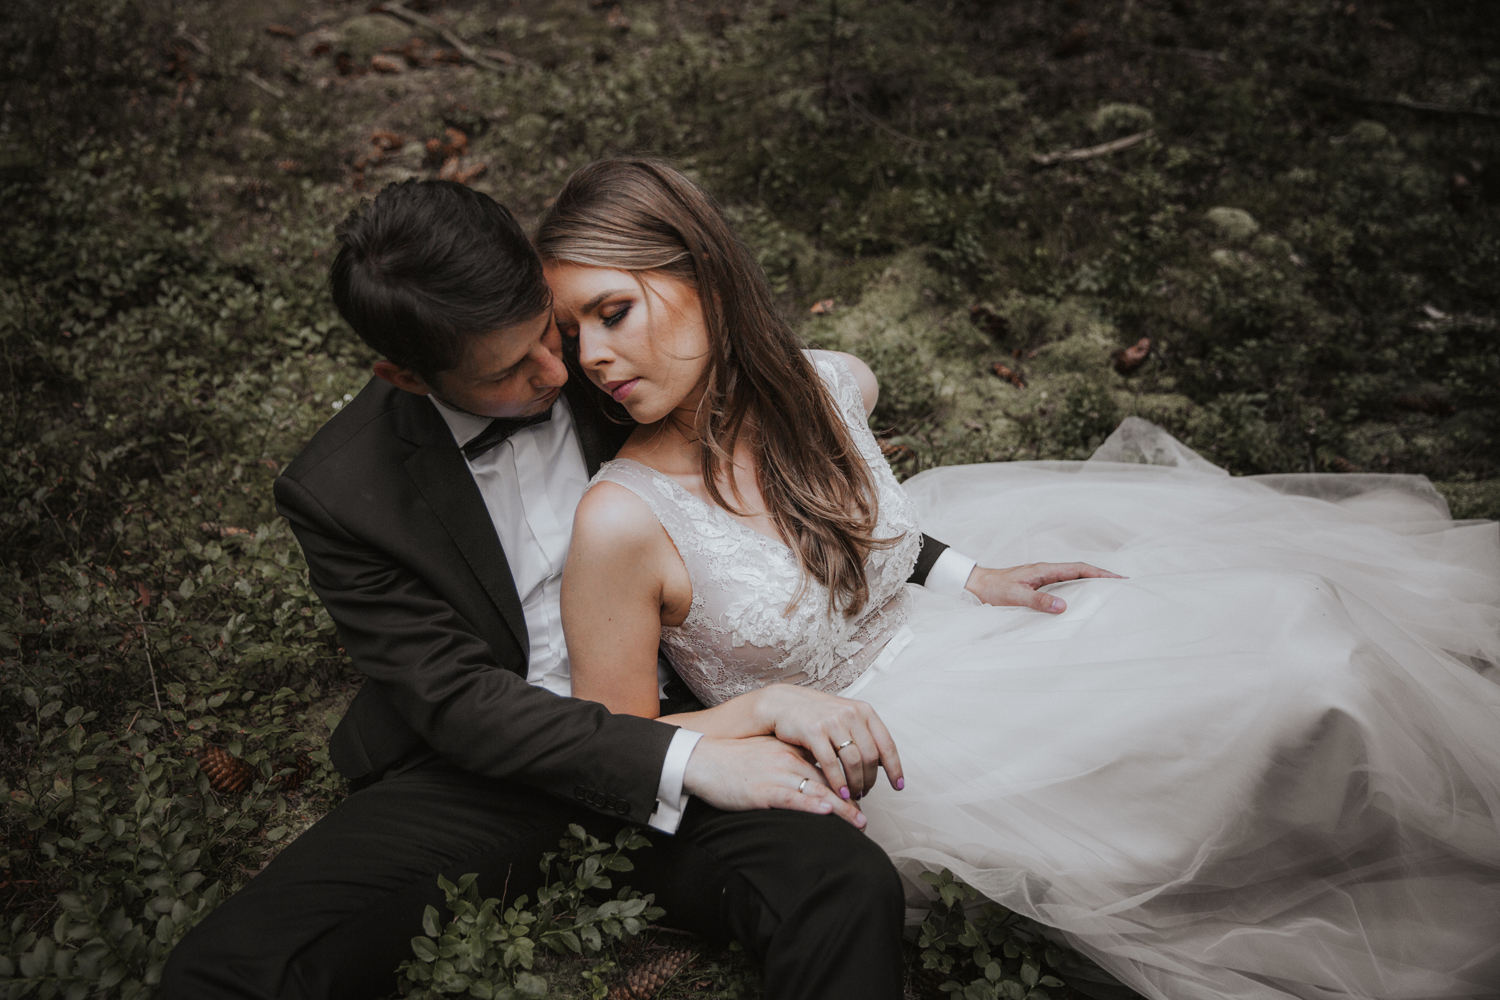 weddingphotograher_klaudia_rafal_nationalpark_515.jpg